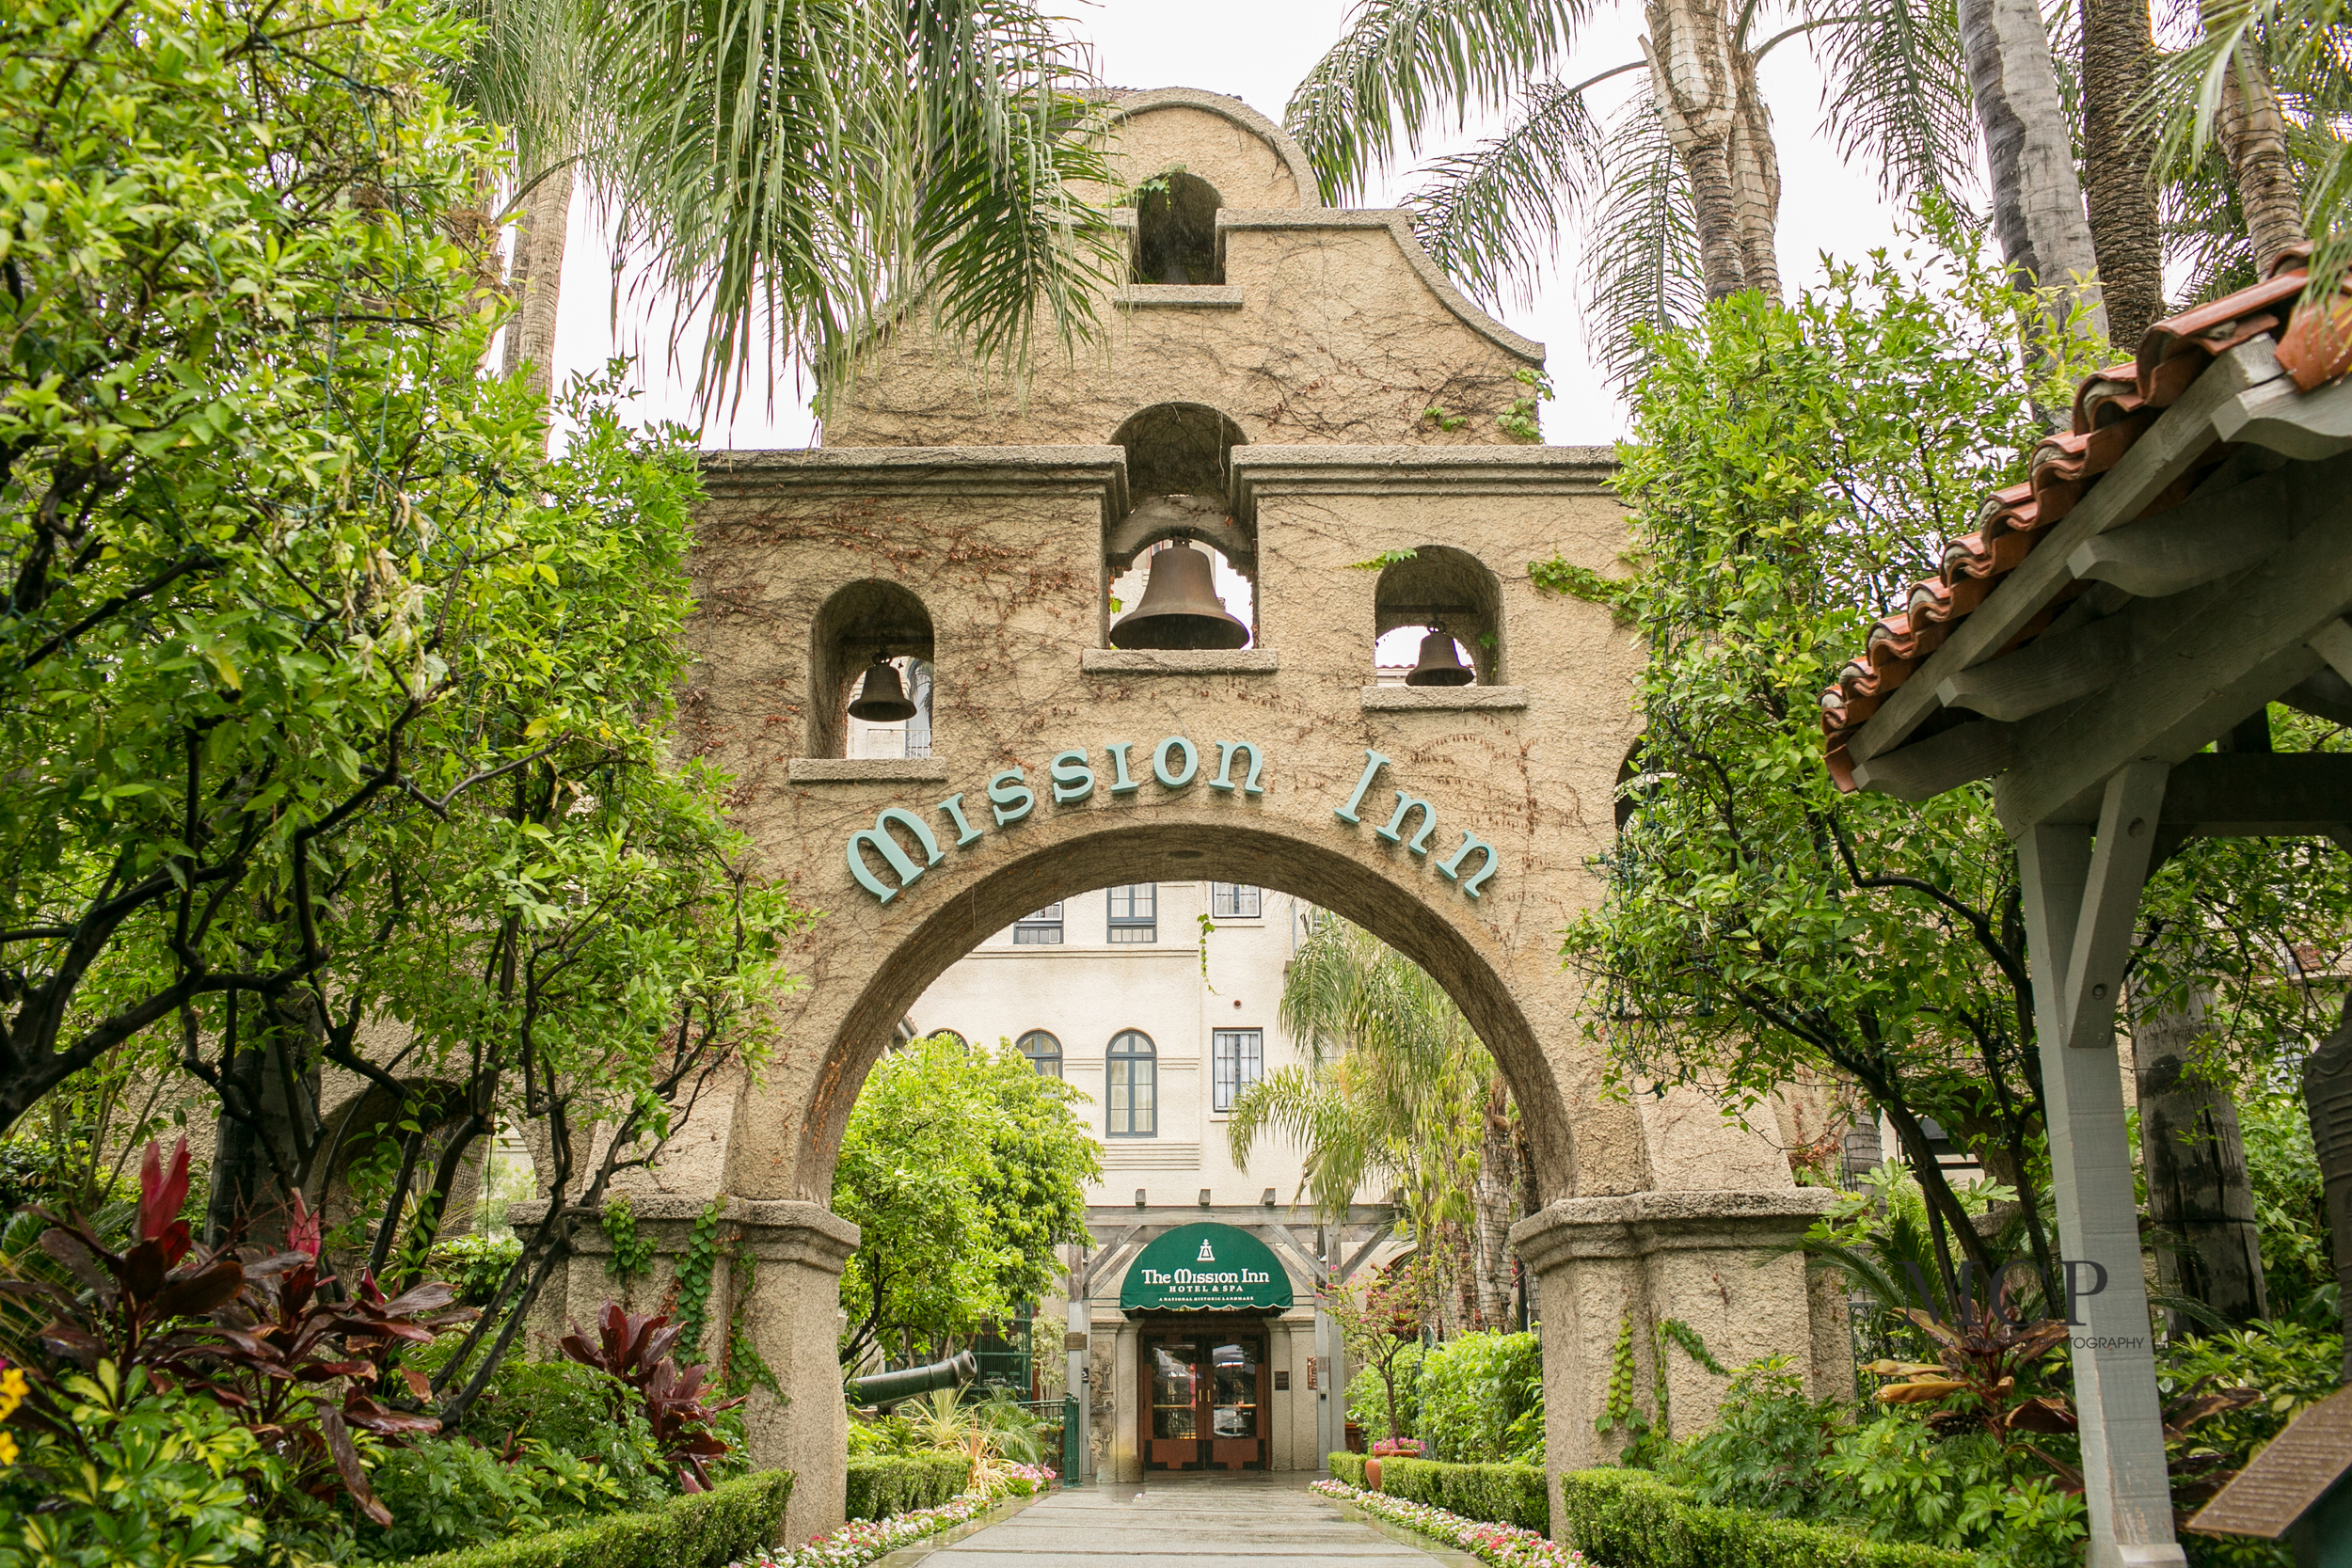 The Beautiful Historical Mission Inn - Riverside CA